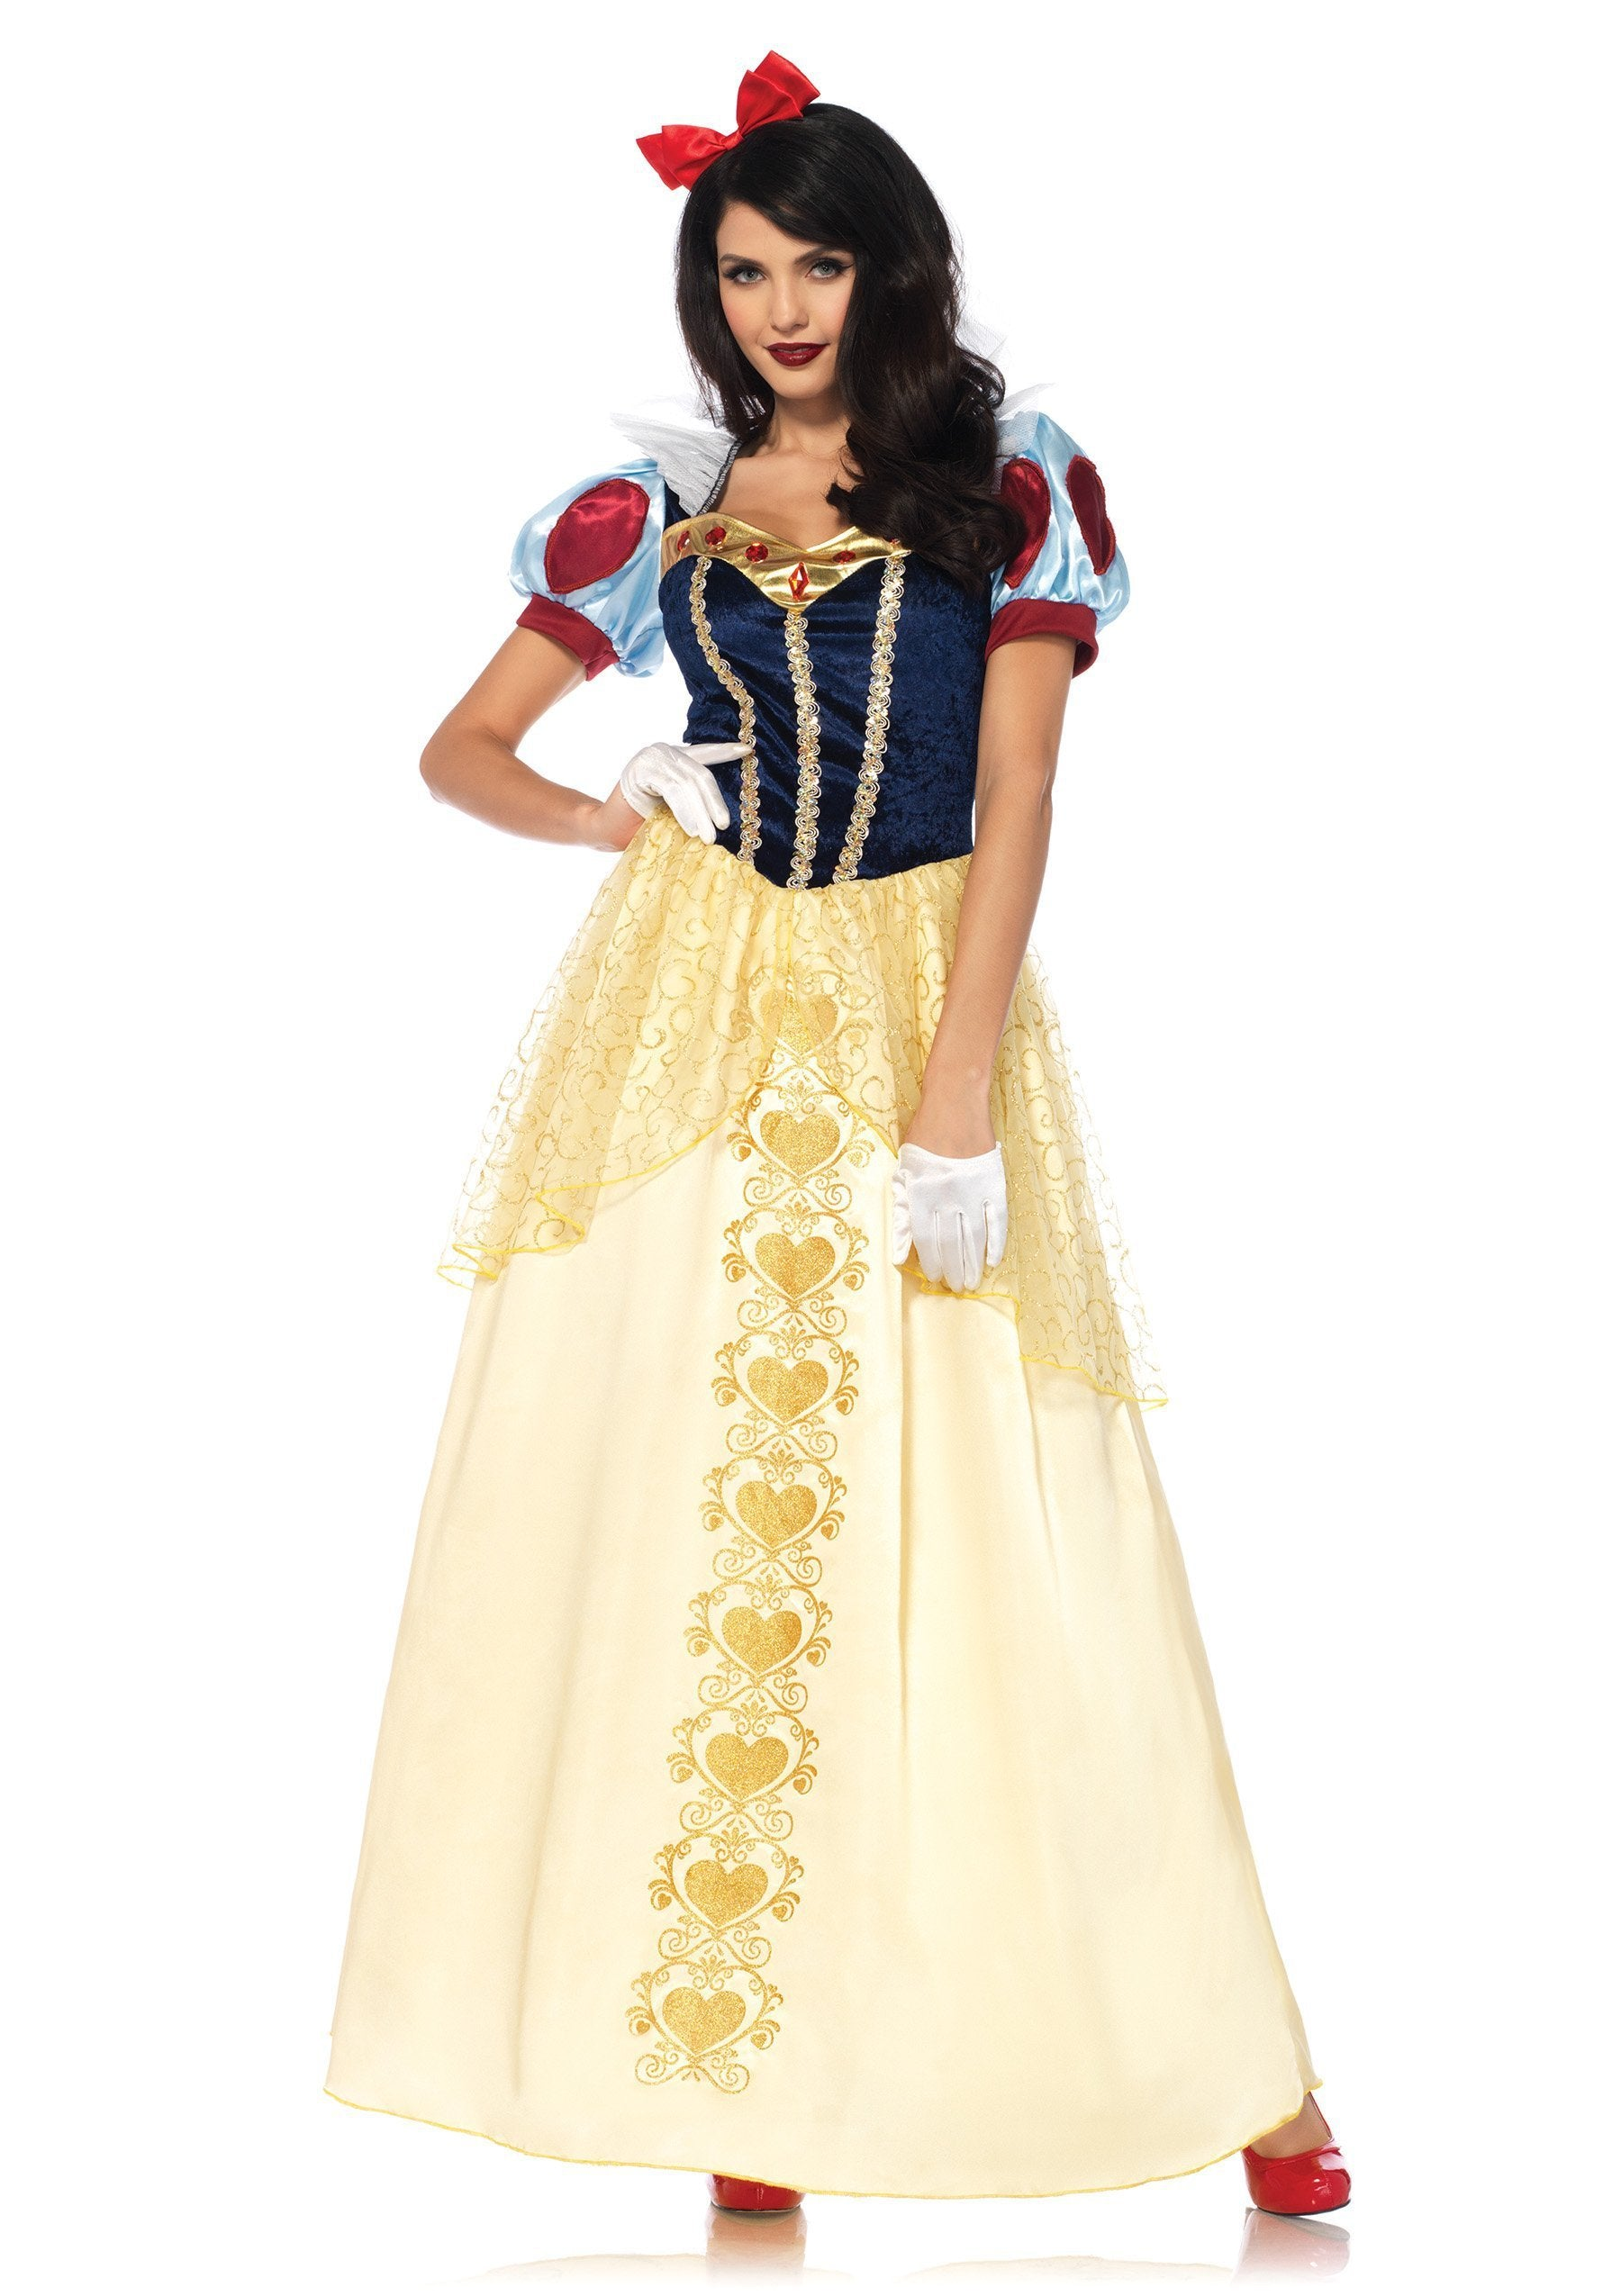 Adult snow white